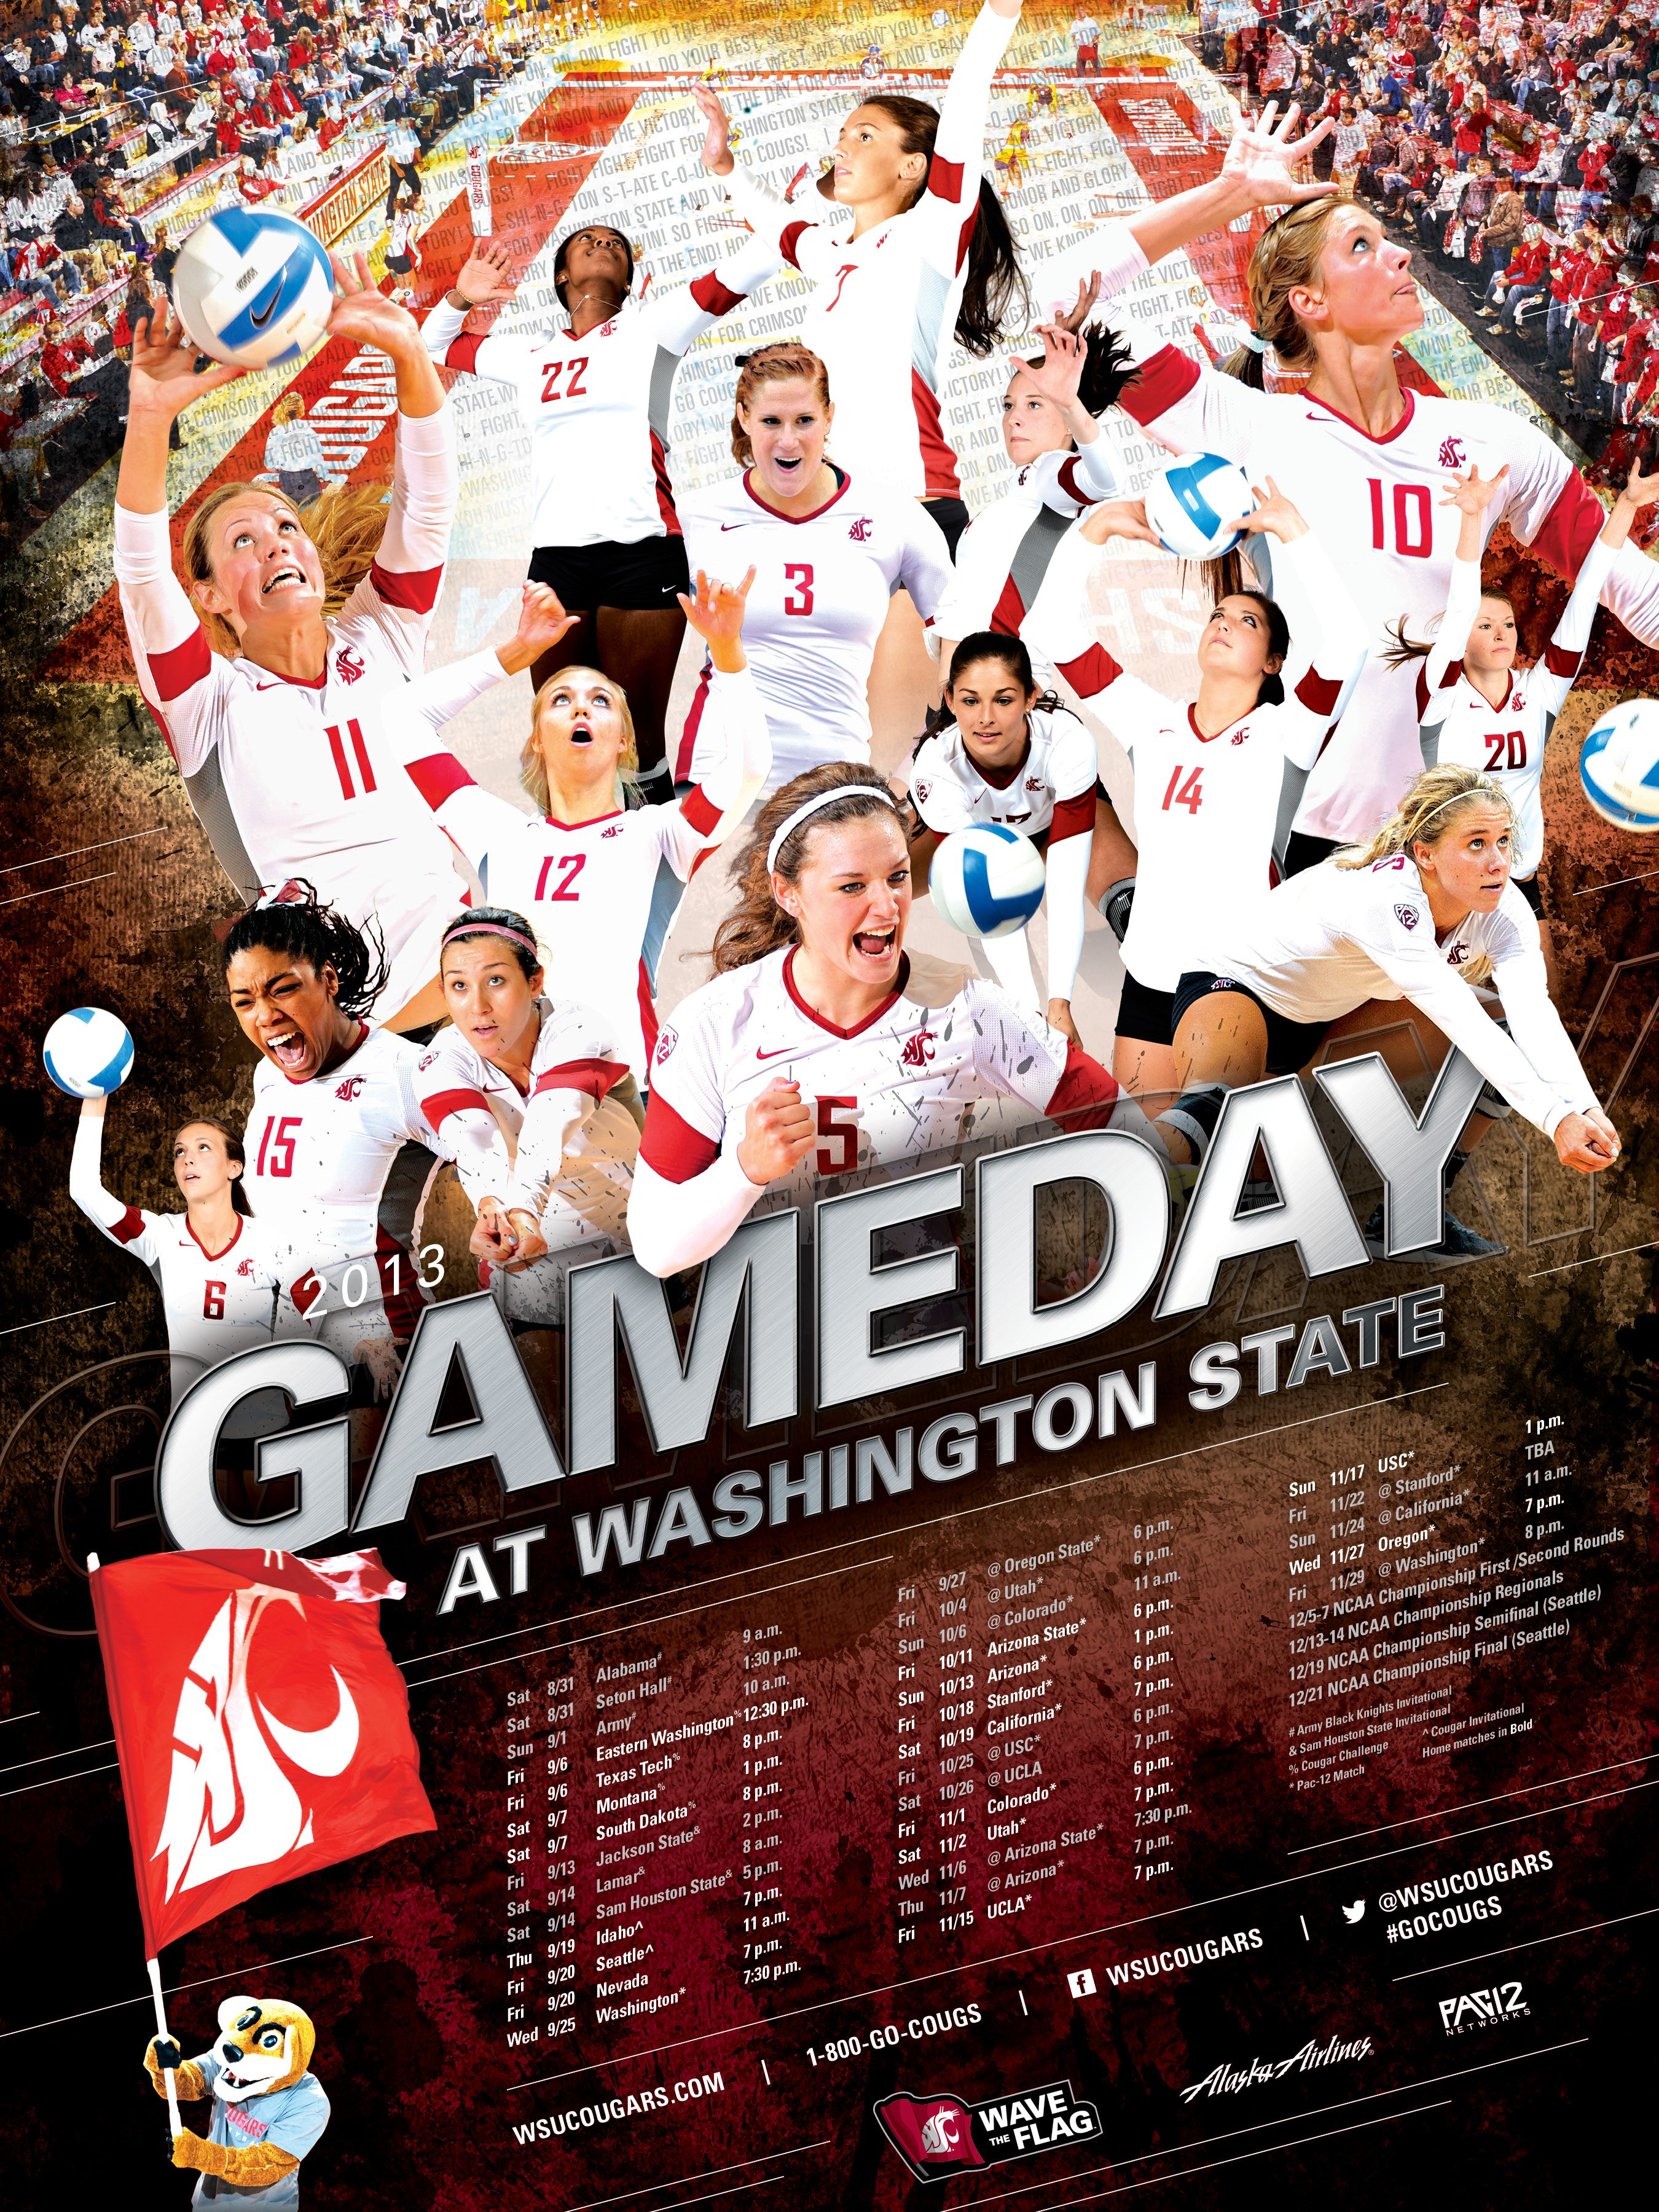 Wsu Athletics Posters Washington State University Athletics Volleyball Posters High School Sports Posters Sport Poster